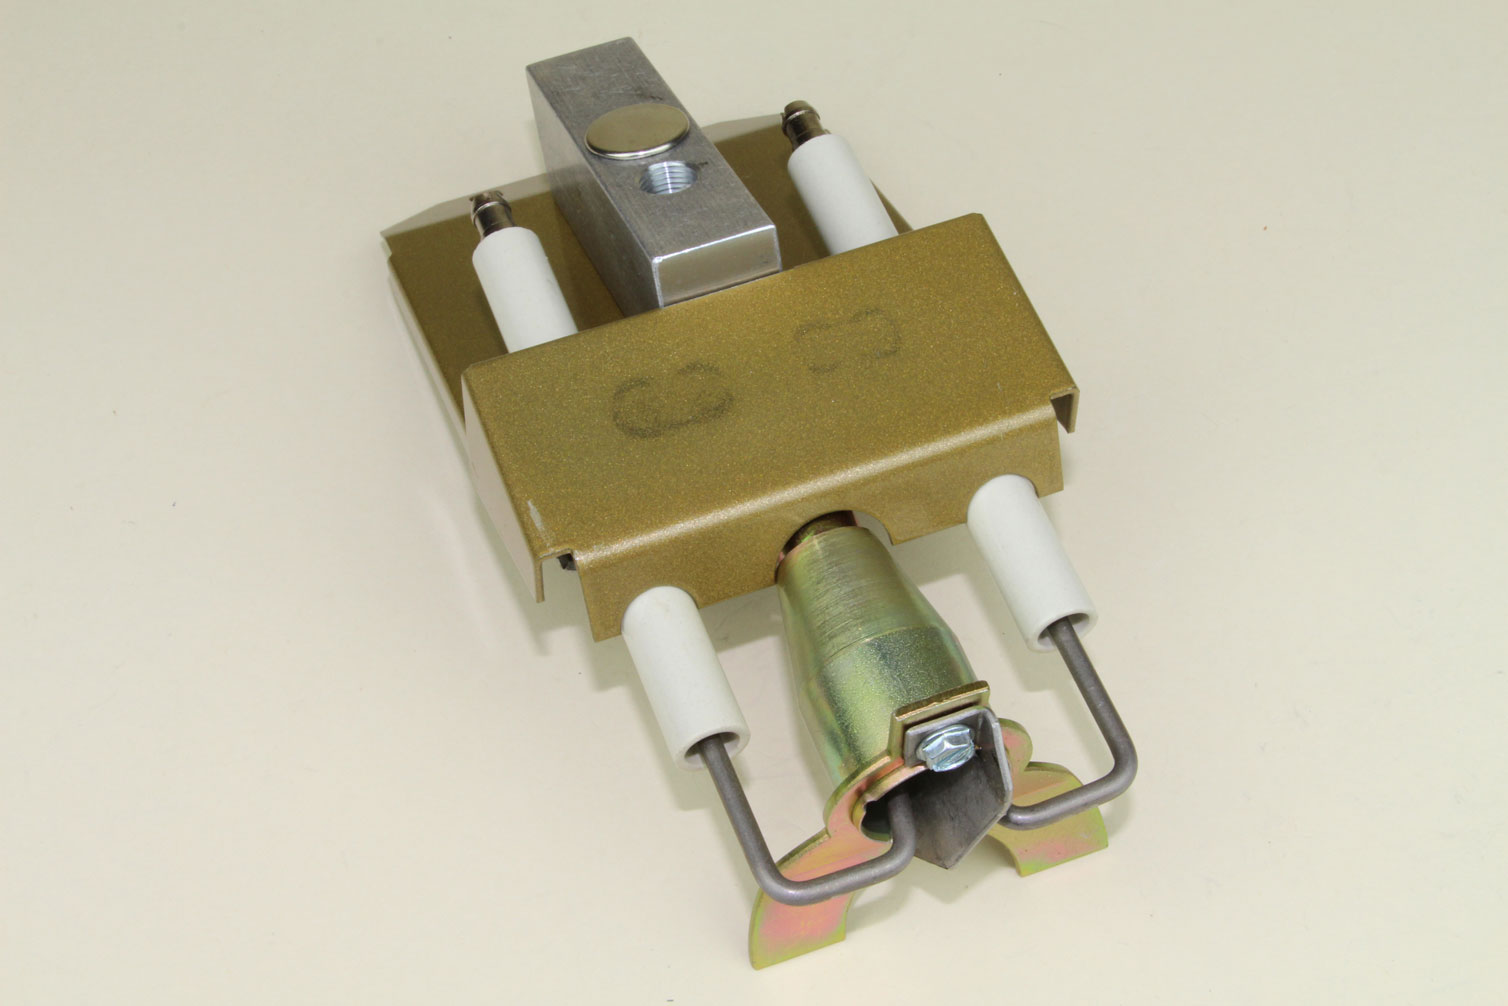 P/J-121 6425-90 Ignitor Assembly (w/Two Electrodes)